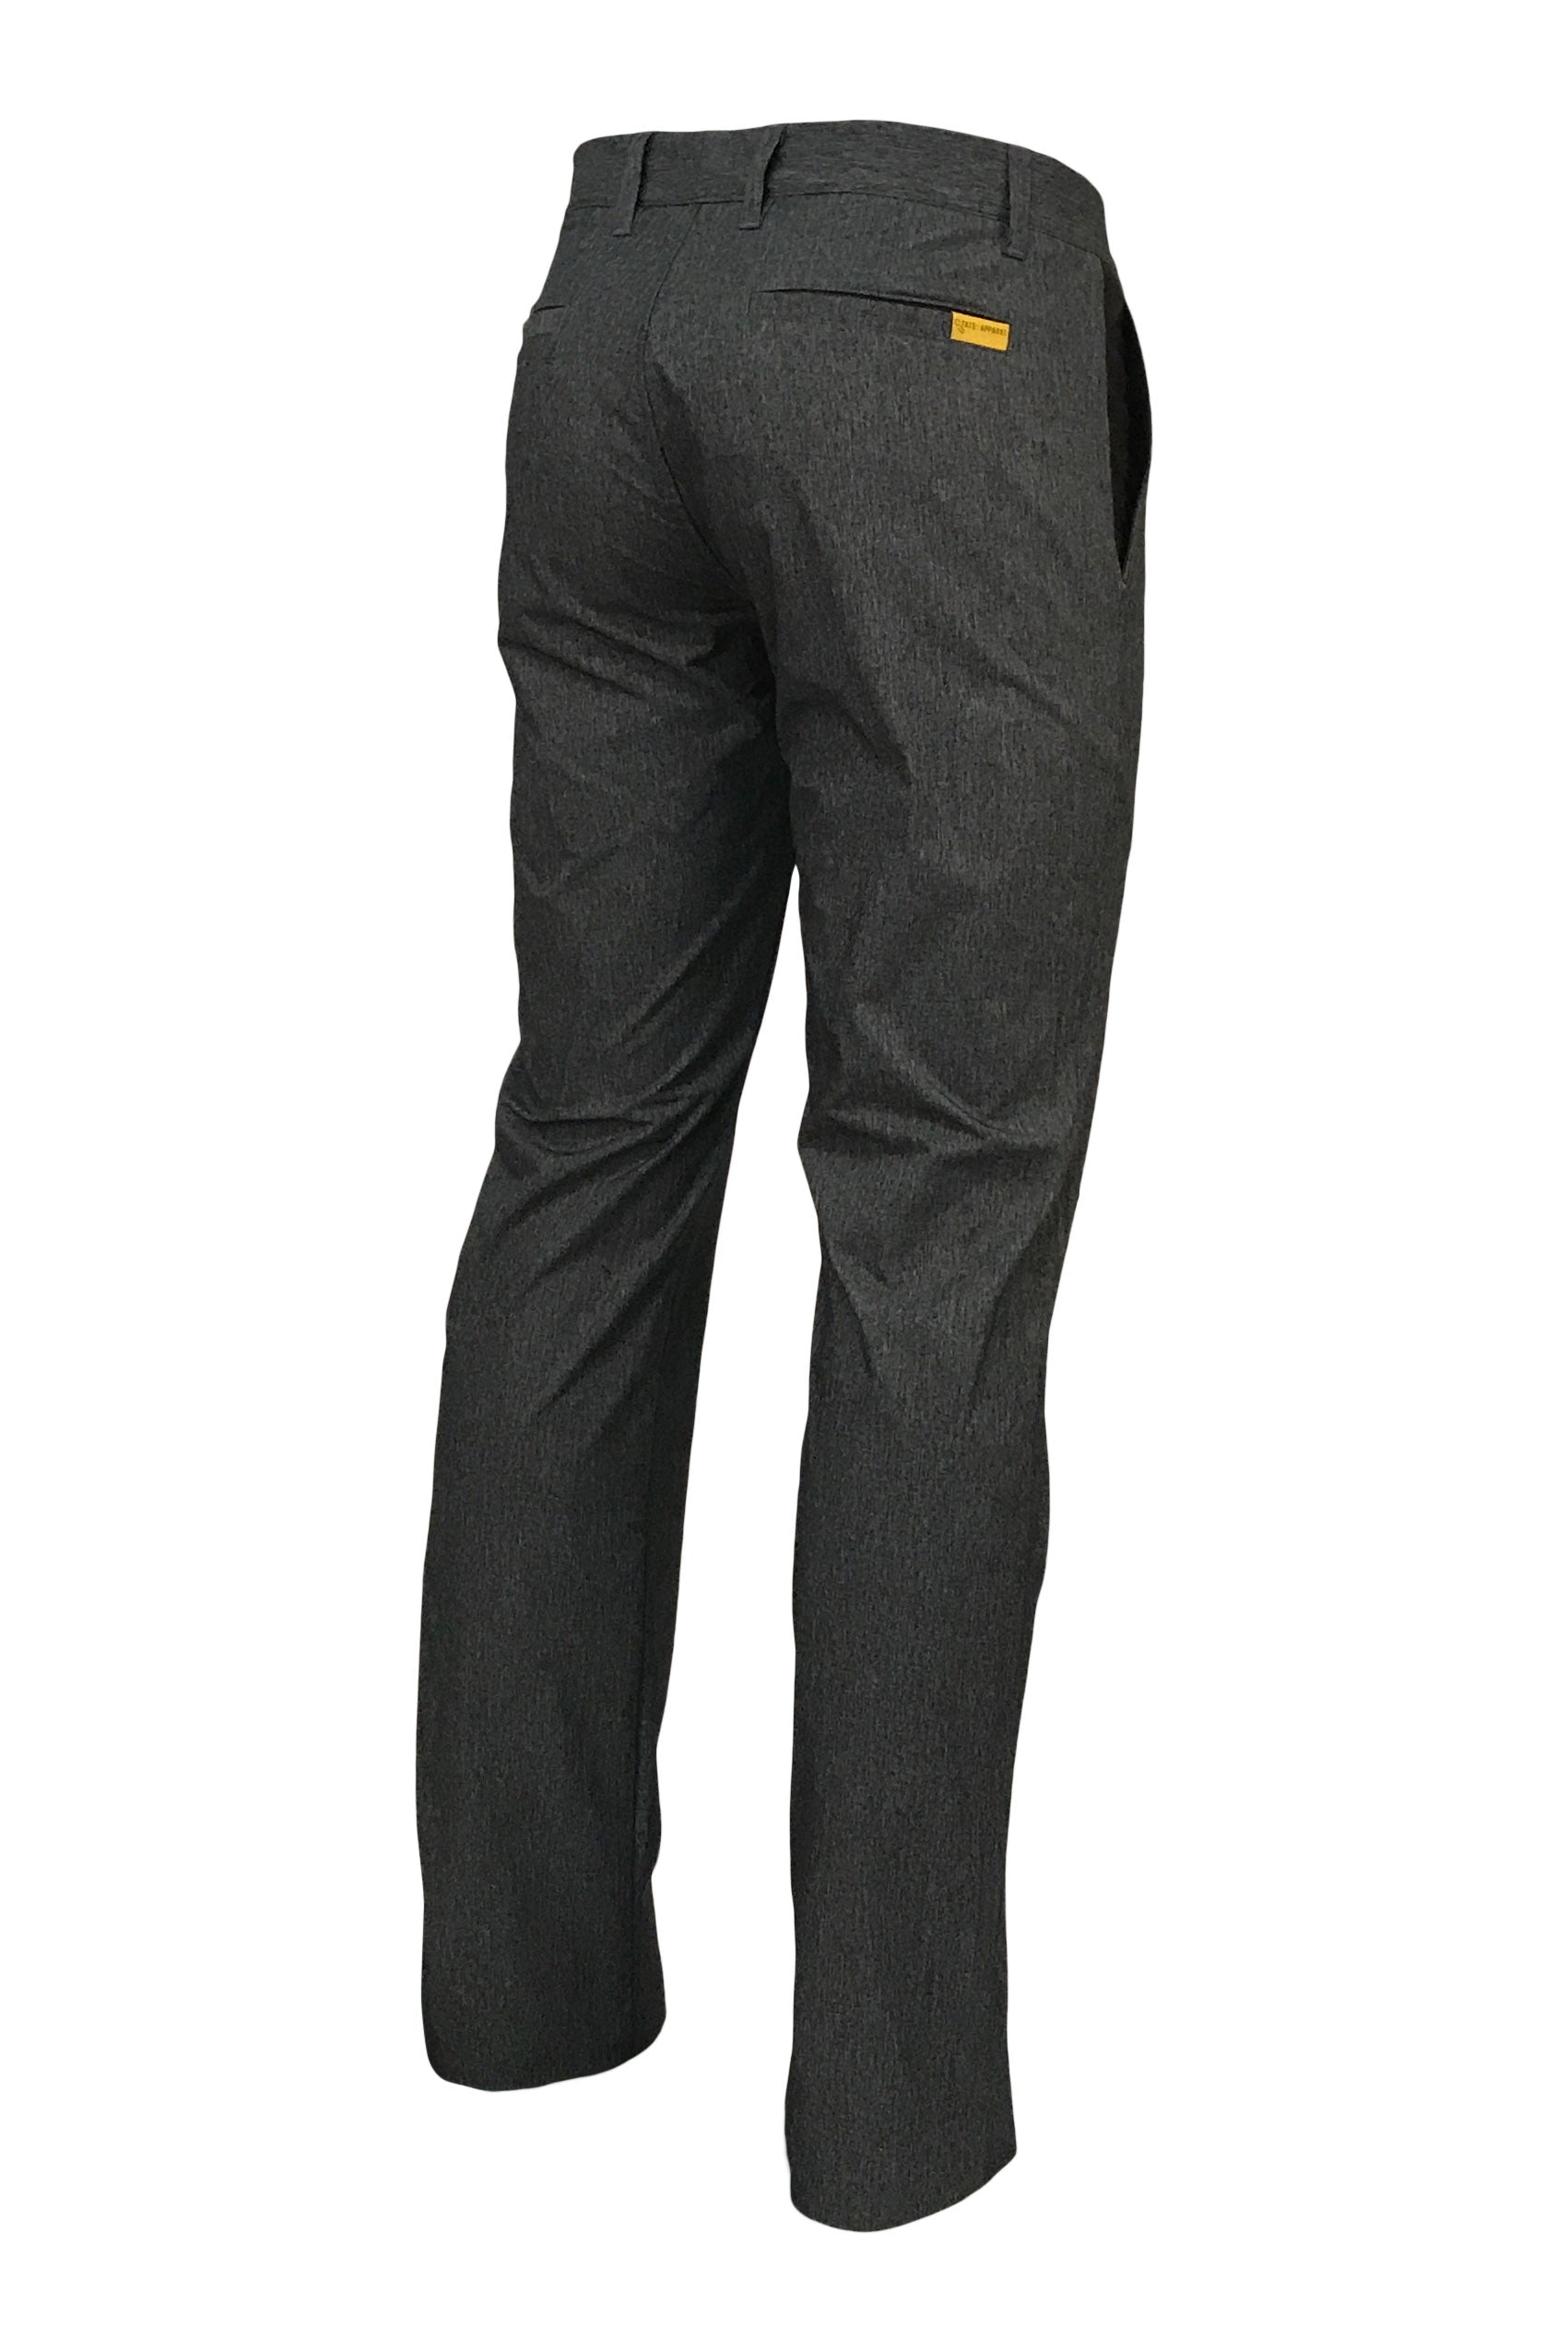 CLUBHOUSE PANTS - BLACK MELANGE